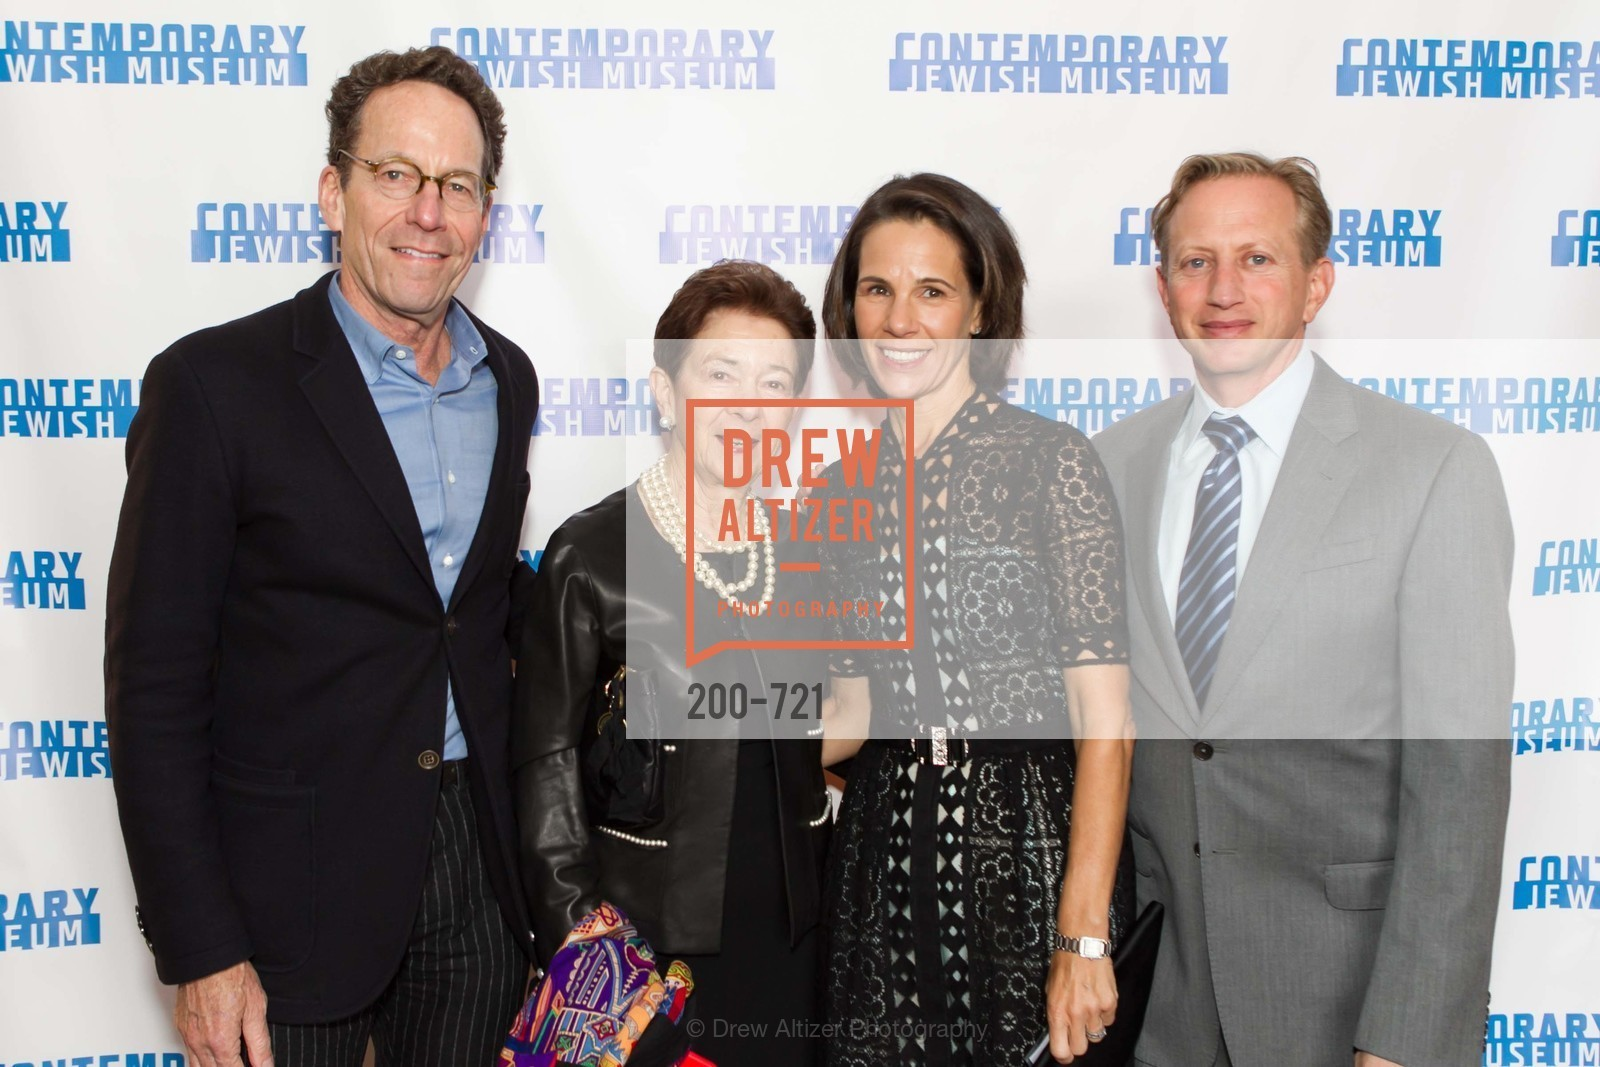 Alan Mark, Roselyne Swig, Shana Middler, David Middler, The 2015 Dorothy Saxe Invitational Celebration at the JEWISH MUSEUM, US, May 12th, 2015,Drew Altizer, Drew Altizer Photography, full-service agency, private events, San Francisco photographer, photographer california